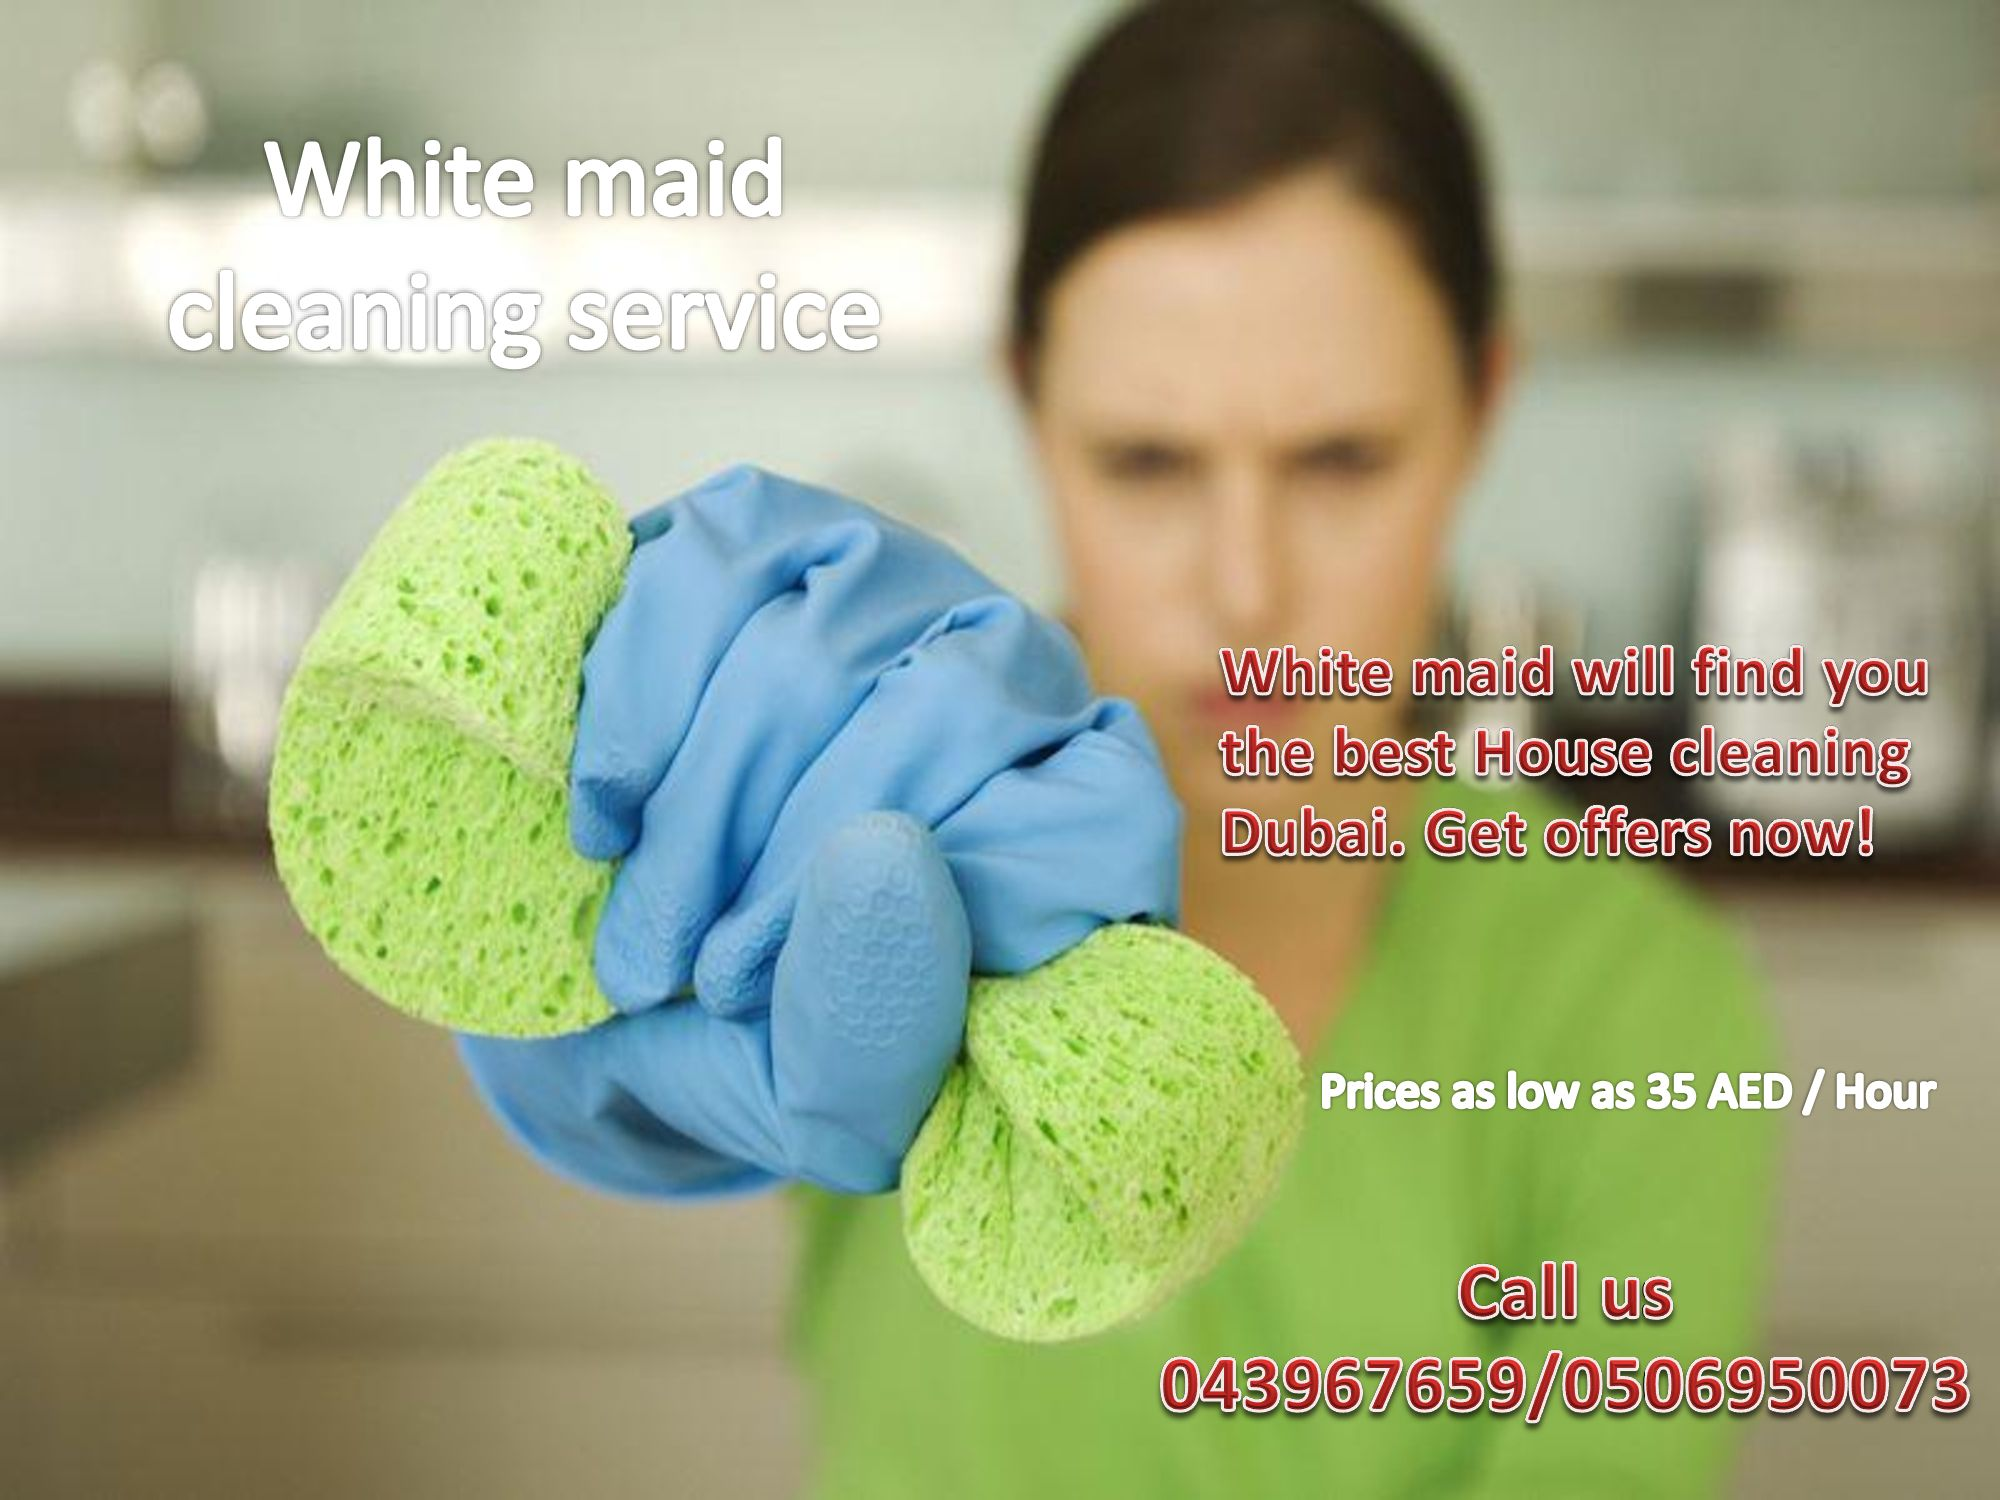 how to find a good house cleaner